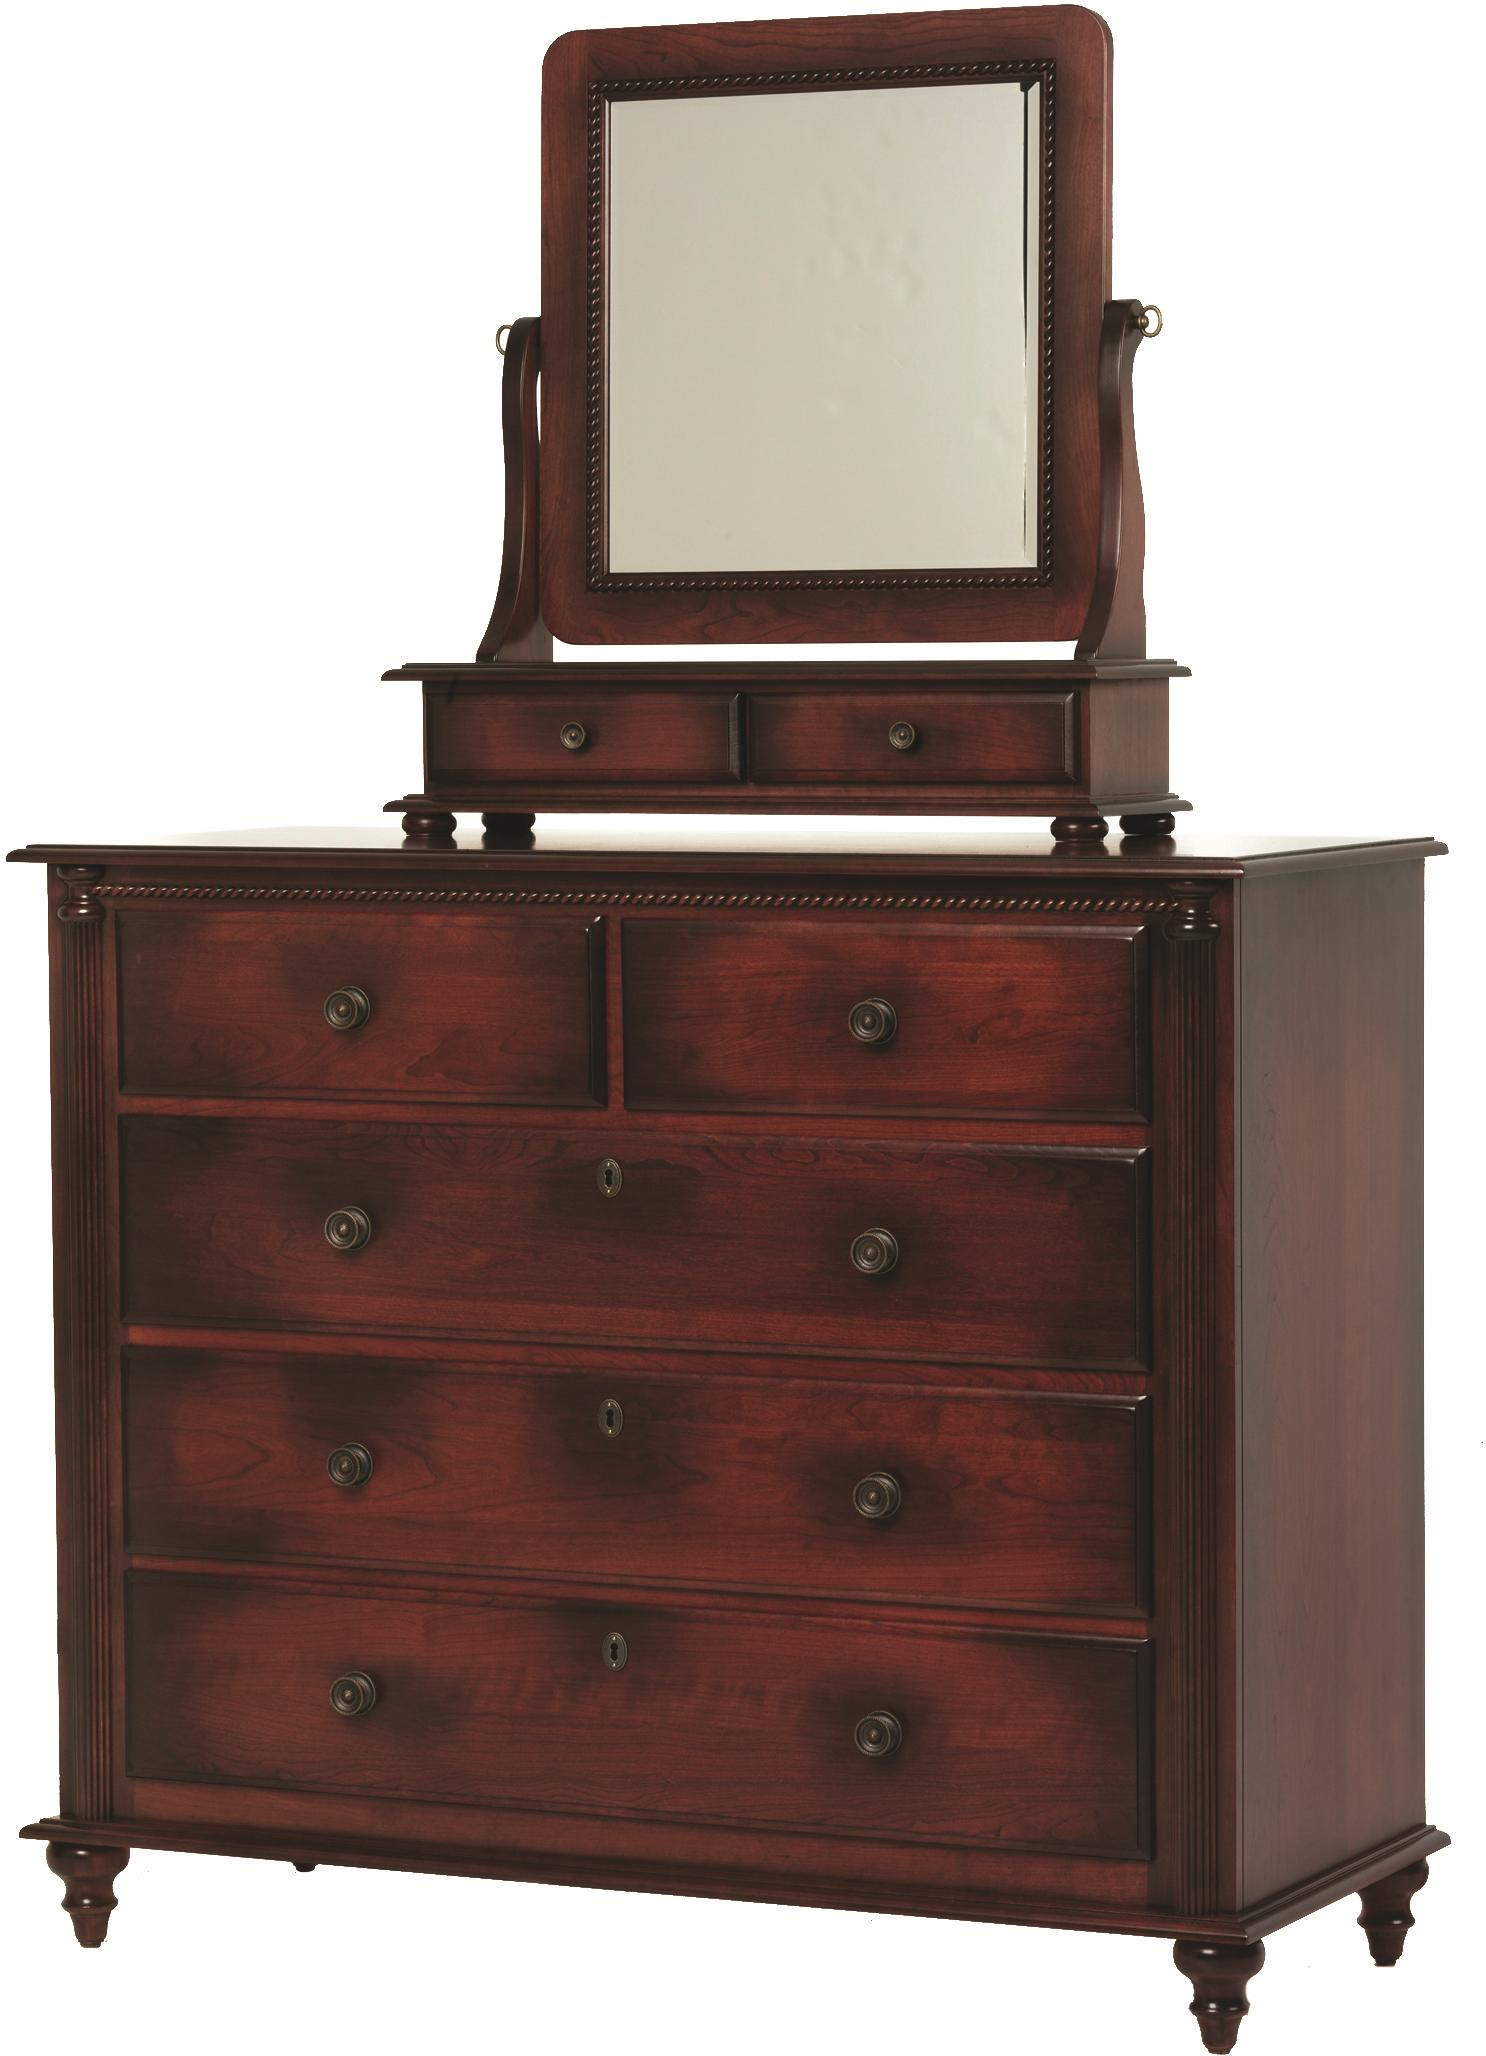 Fur Elise Dressing Chest and Mirror by Millcraft at Saugerties Furniture Mart